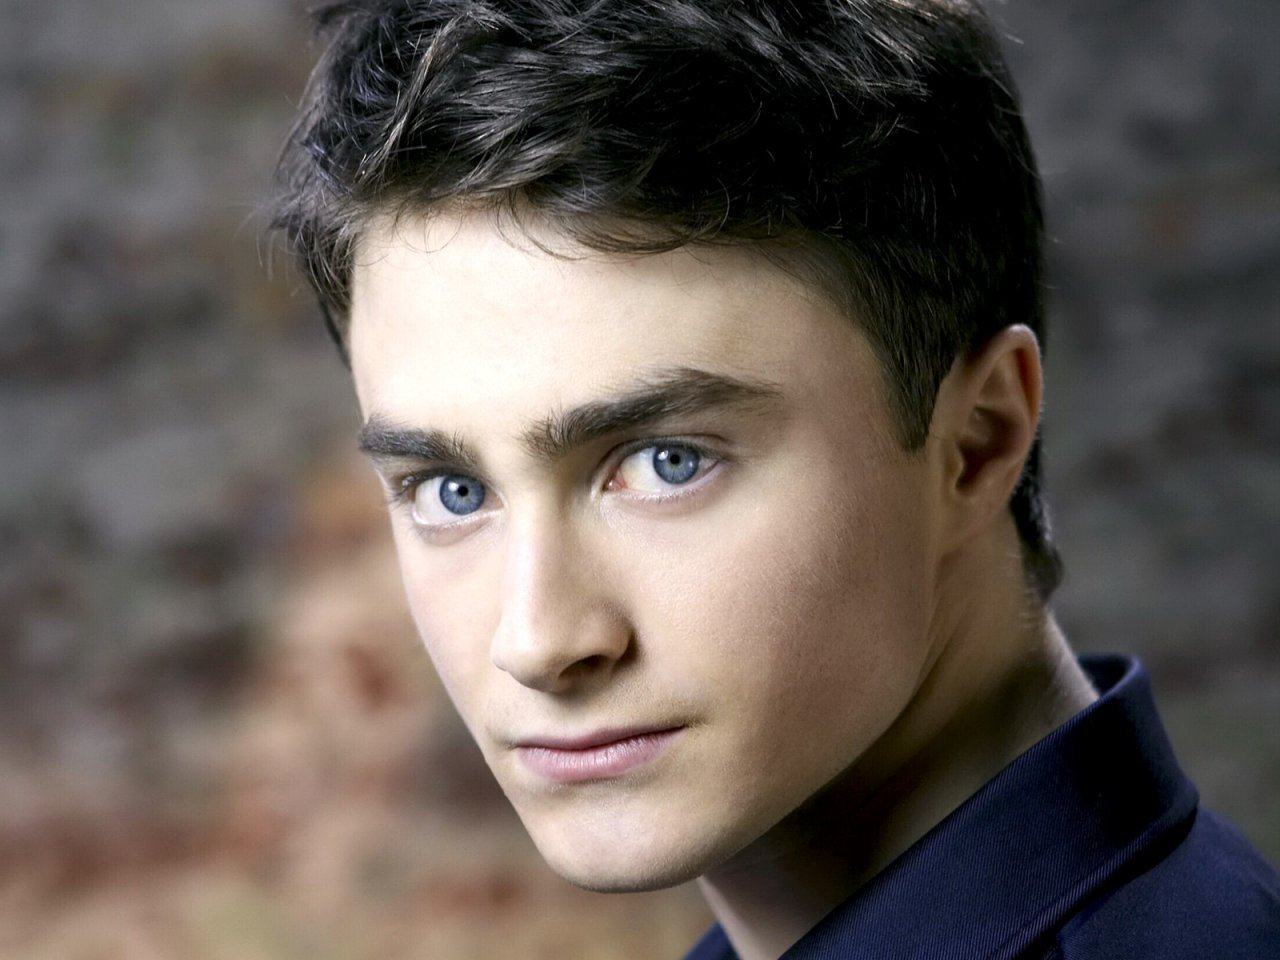 Daniel Radcliffe Images Daniel New Part 1 HD Wallpaper And